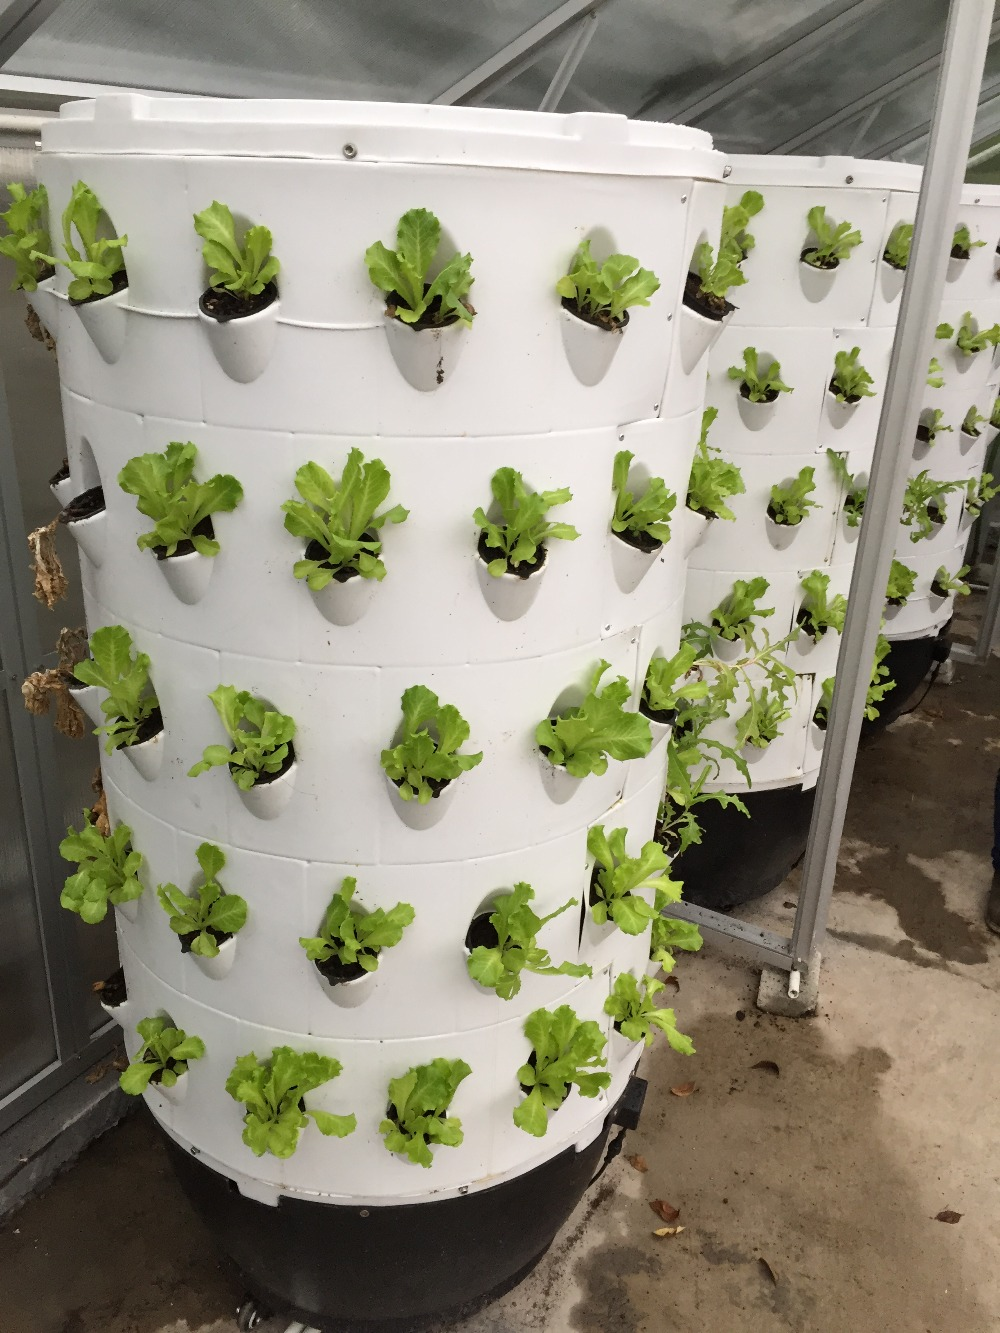 Wholesale 70pcs Hydroponics System Aeroponic tower garden for